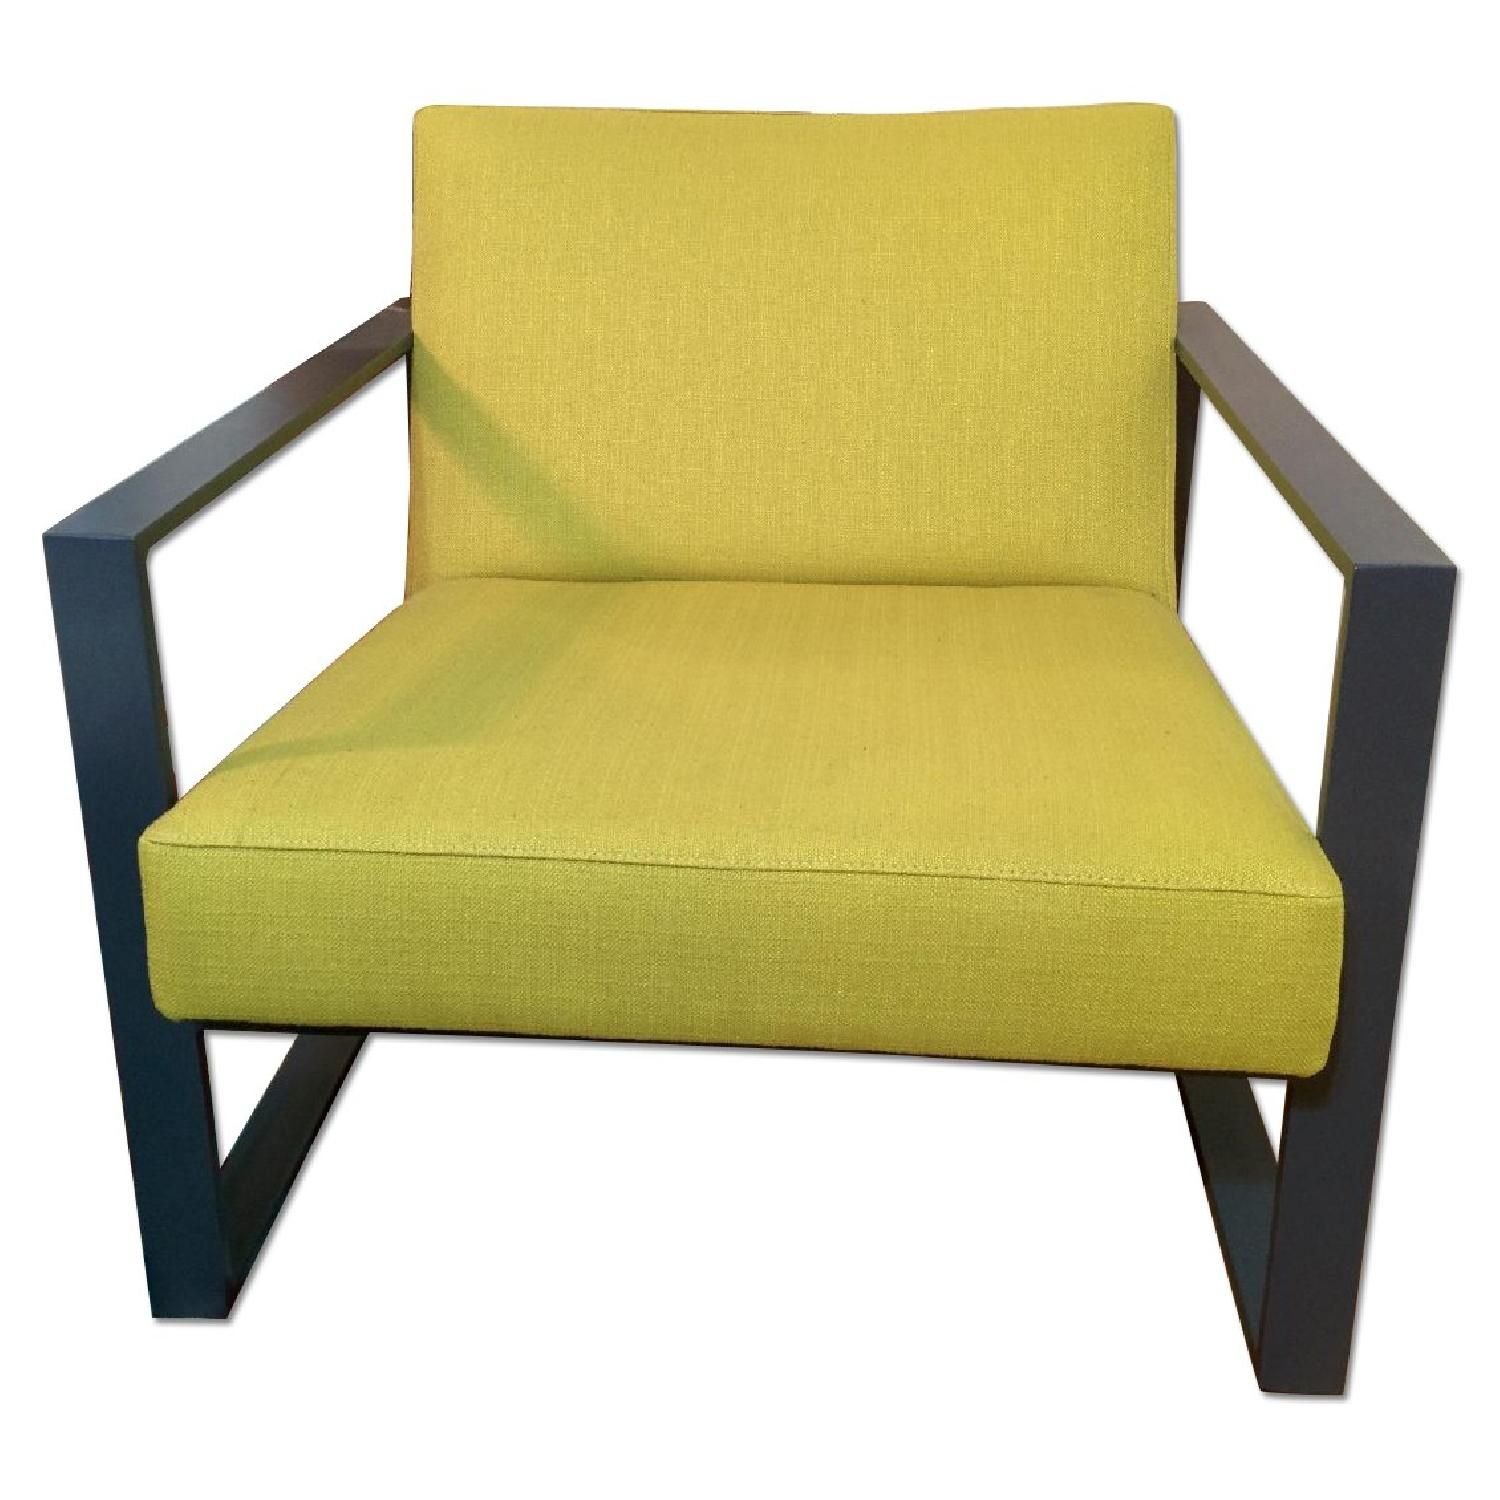 High Quality CB2 Specs Chair In Citron